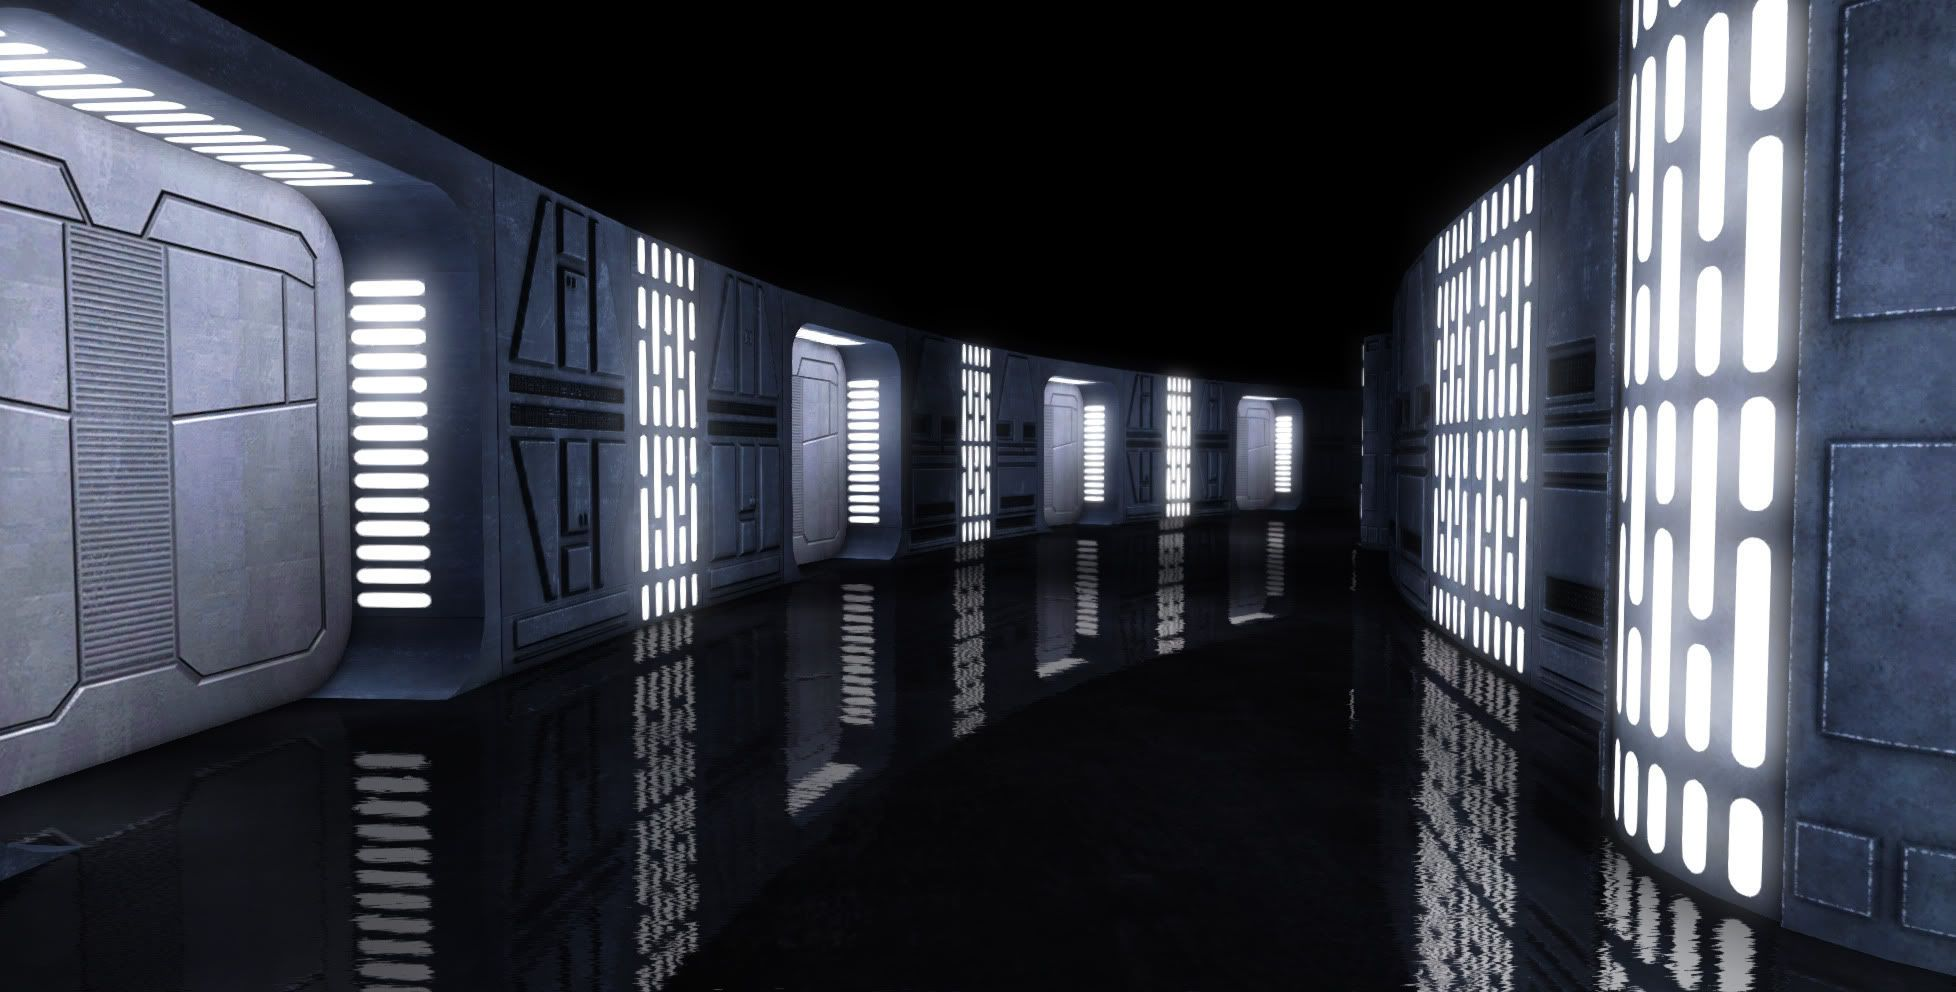 Star Wars Original Death Star Interior Jpg 1956 992 Star Wars